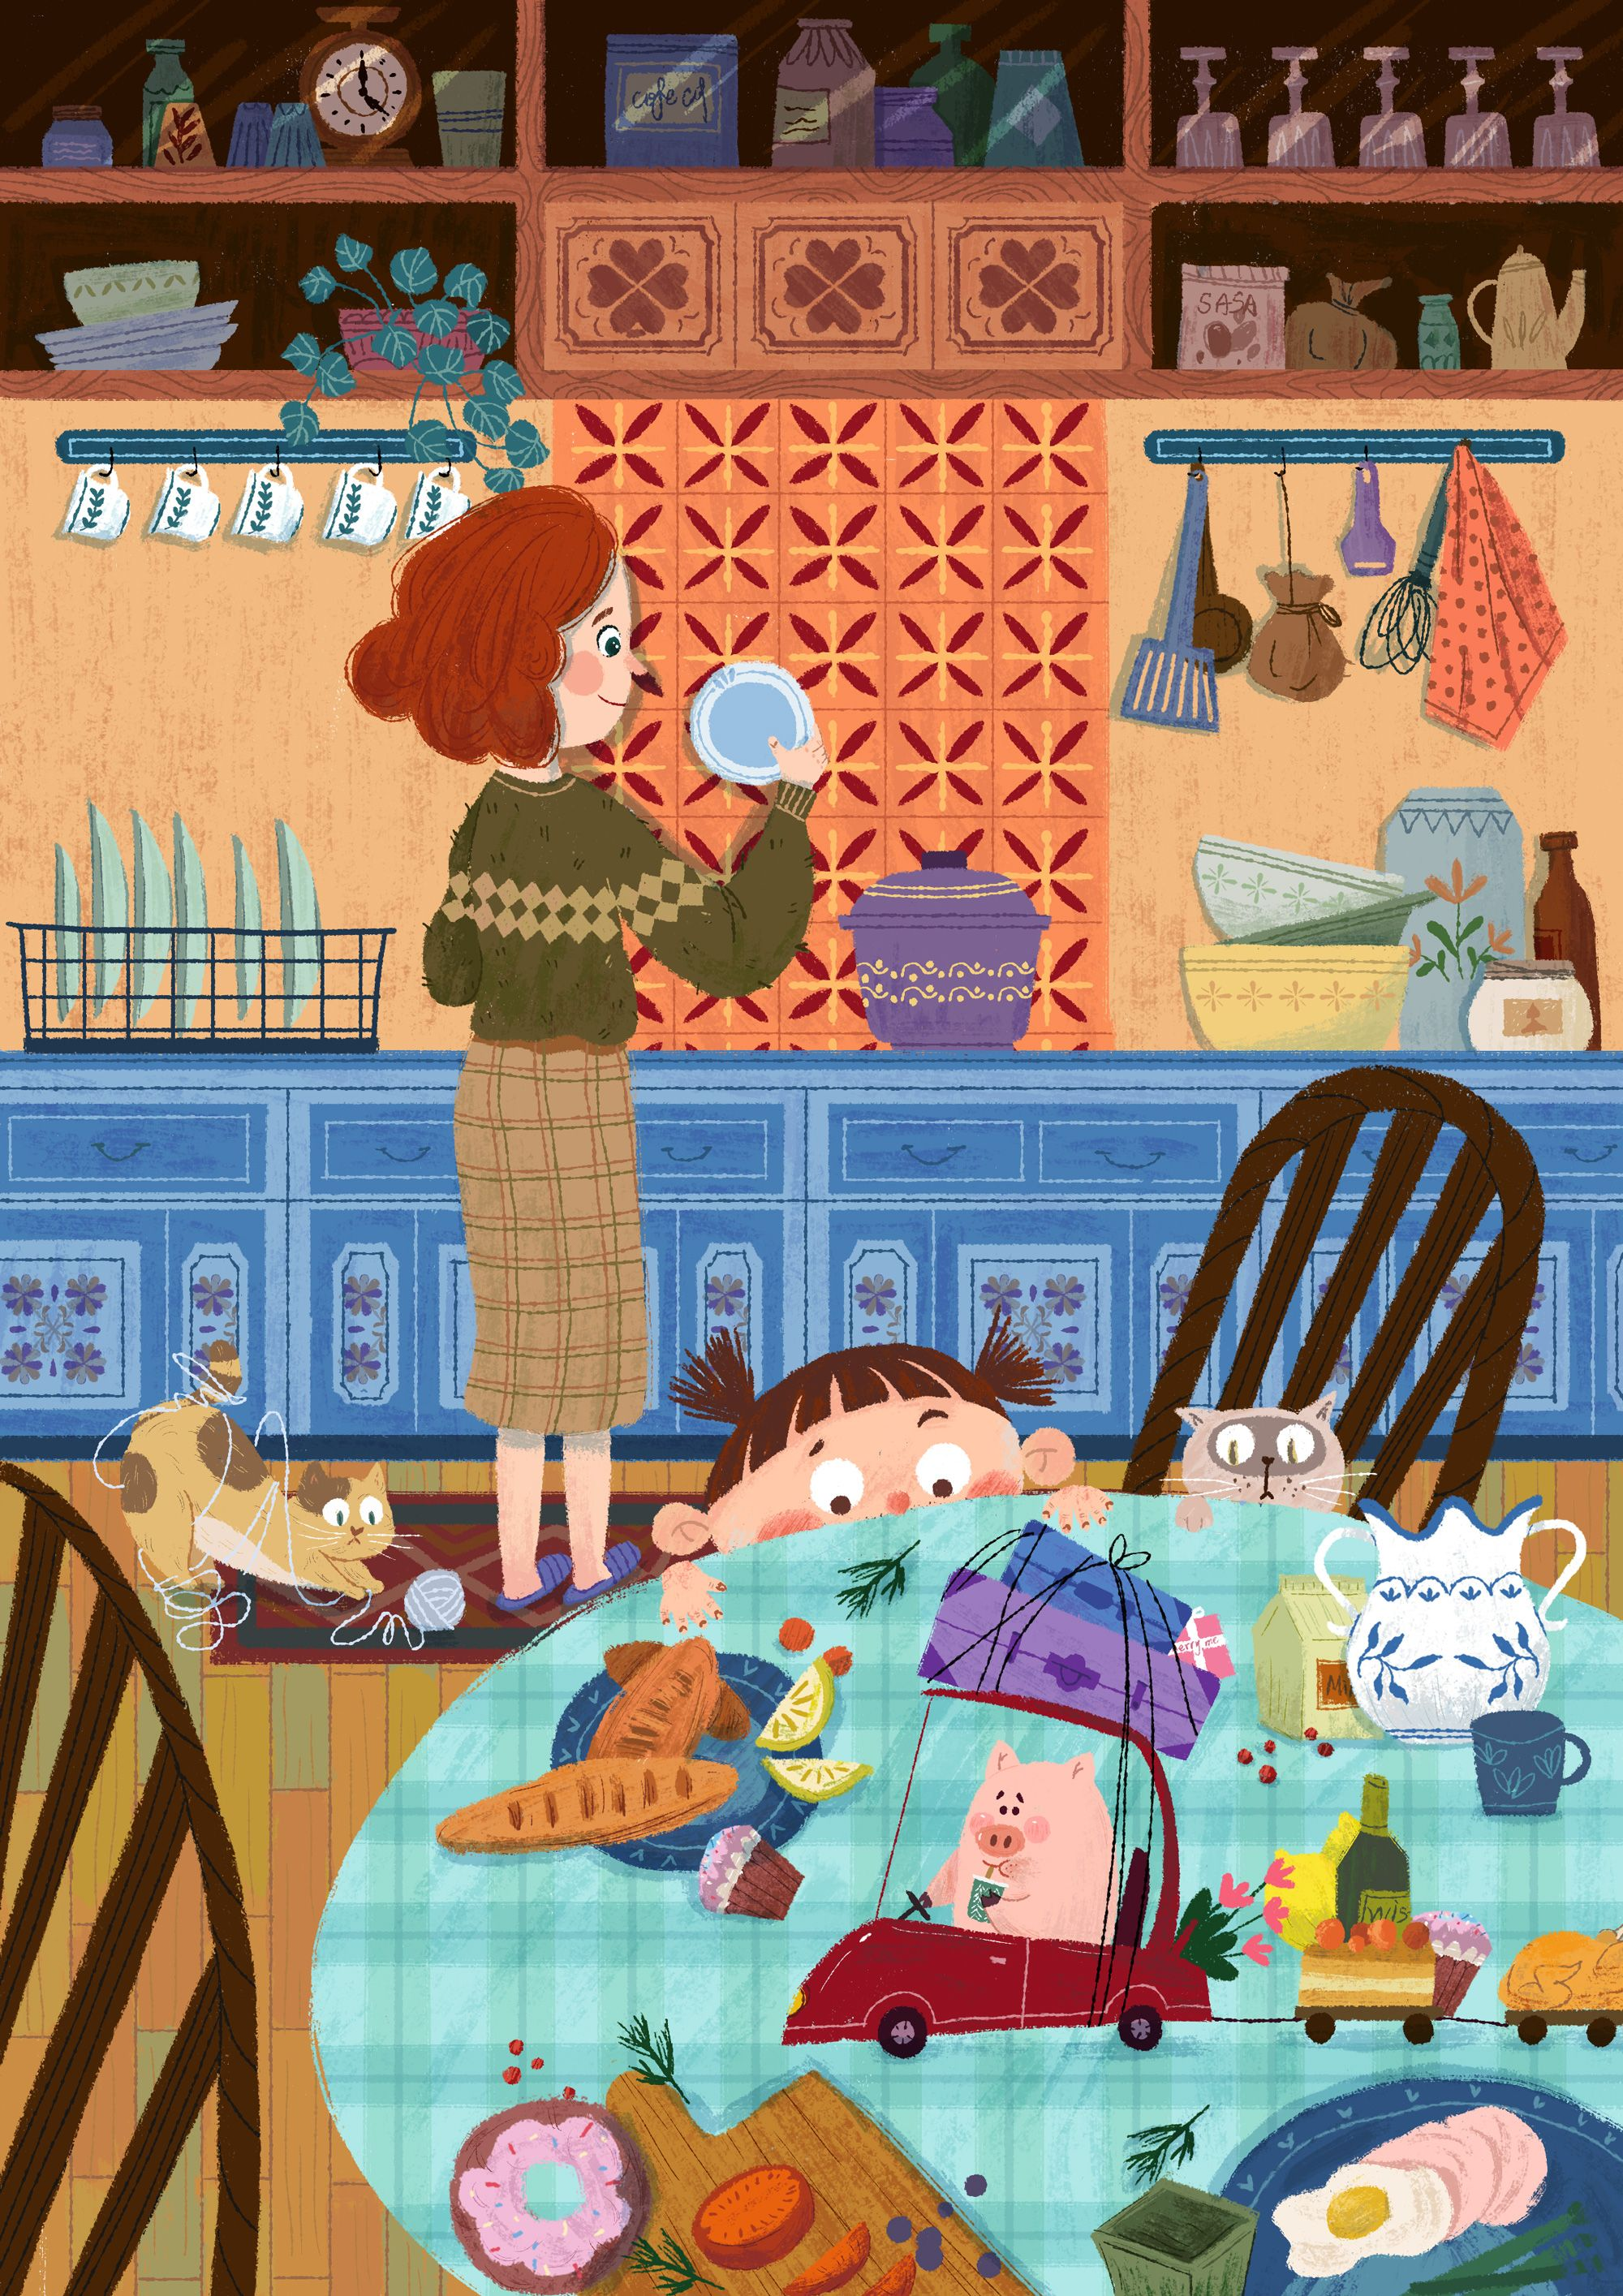 Pin By Andressa Chaves On Ilustracoes In 2020 Book Illustration Art Character Illustration Childrens Books Illustrations